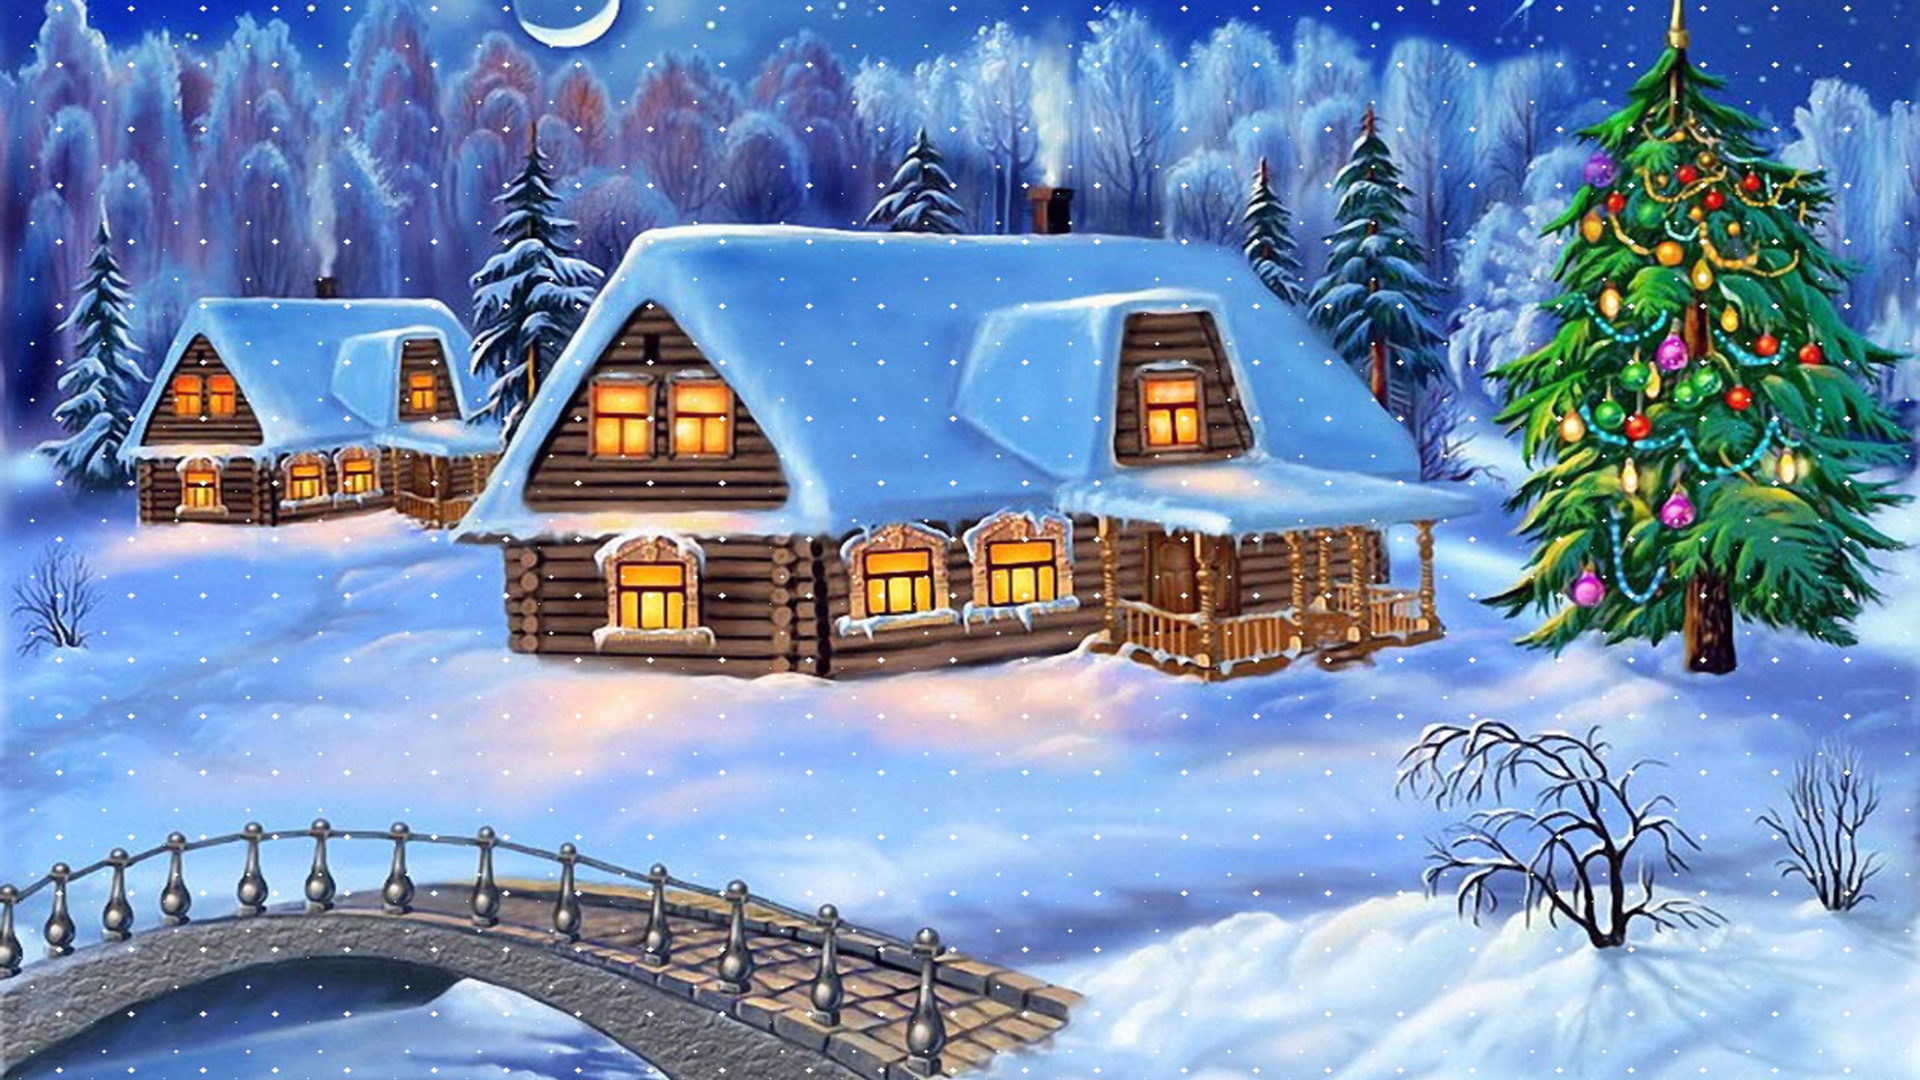 Happy New Year Christmas Tree Winter Village Houses Wooden